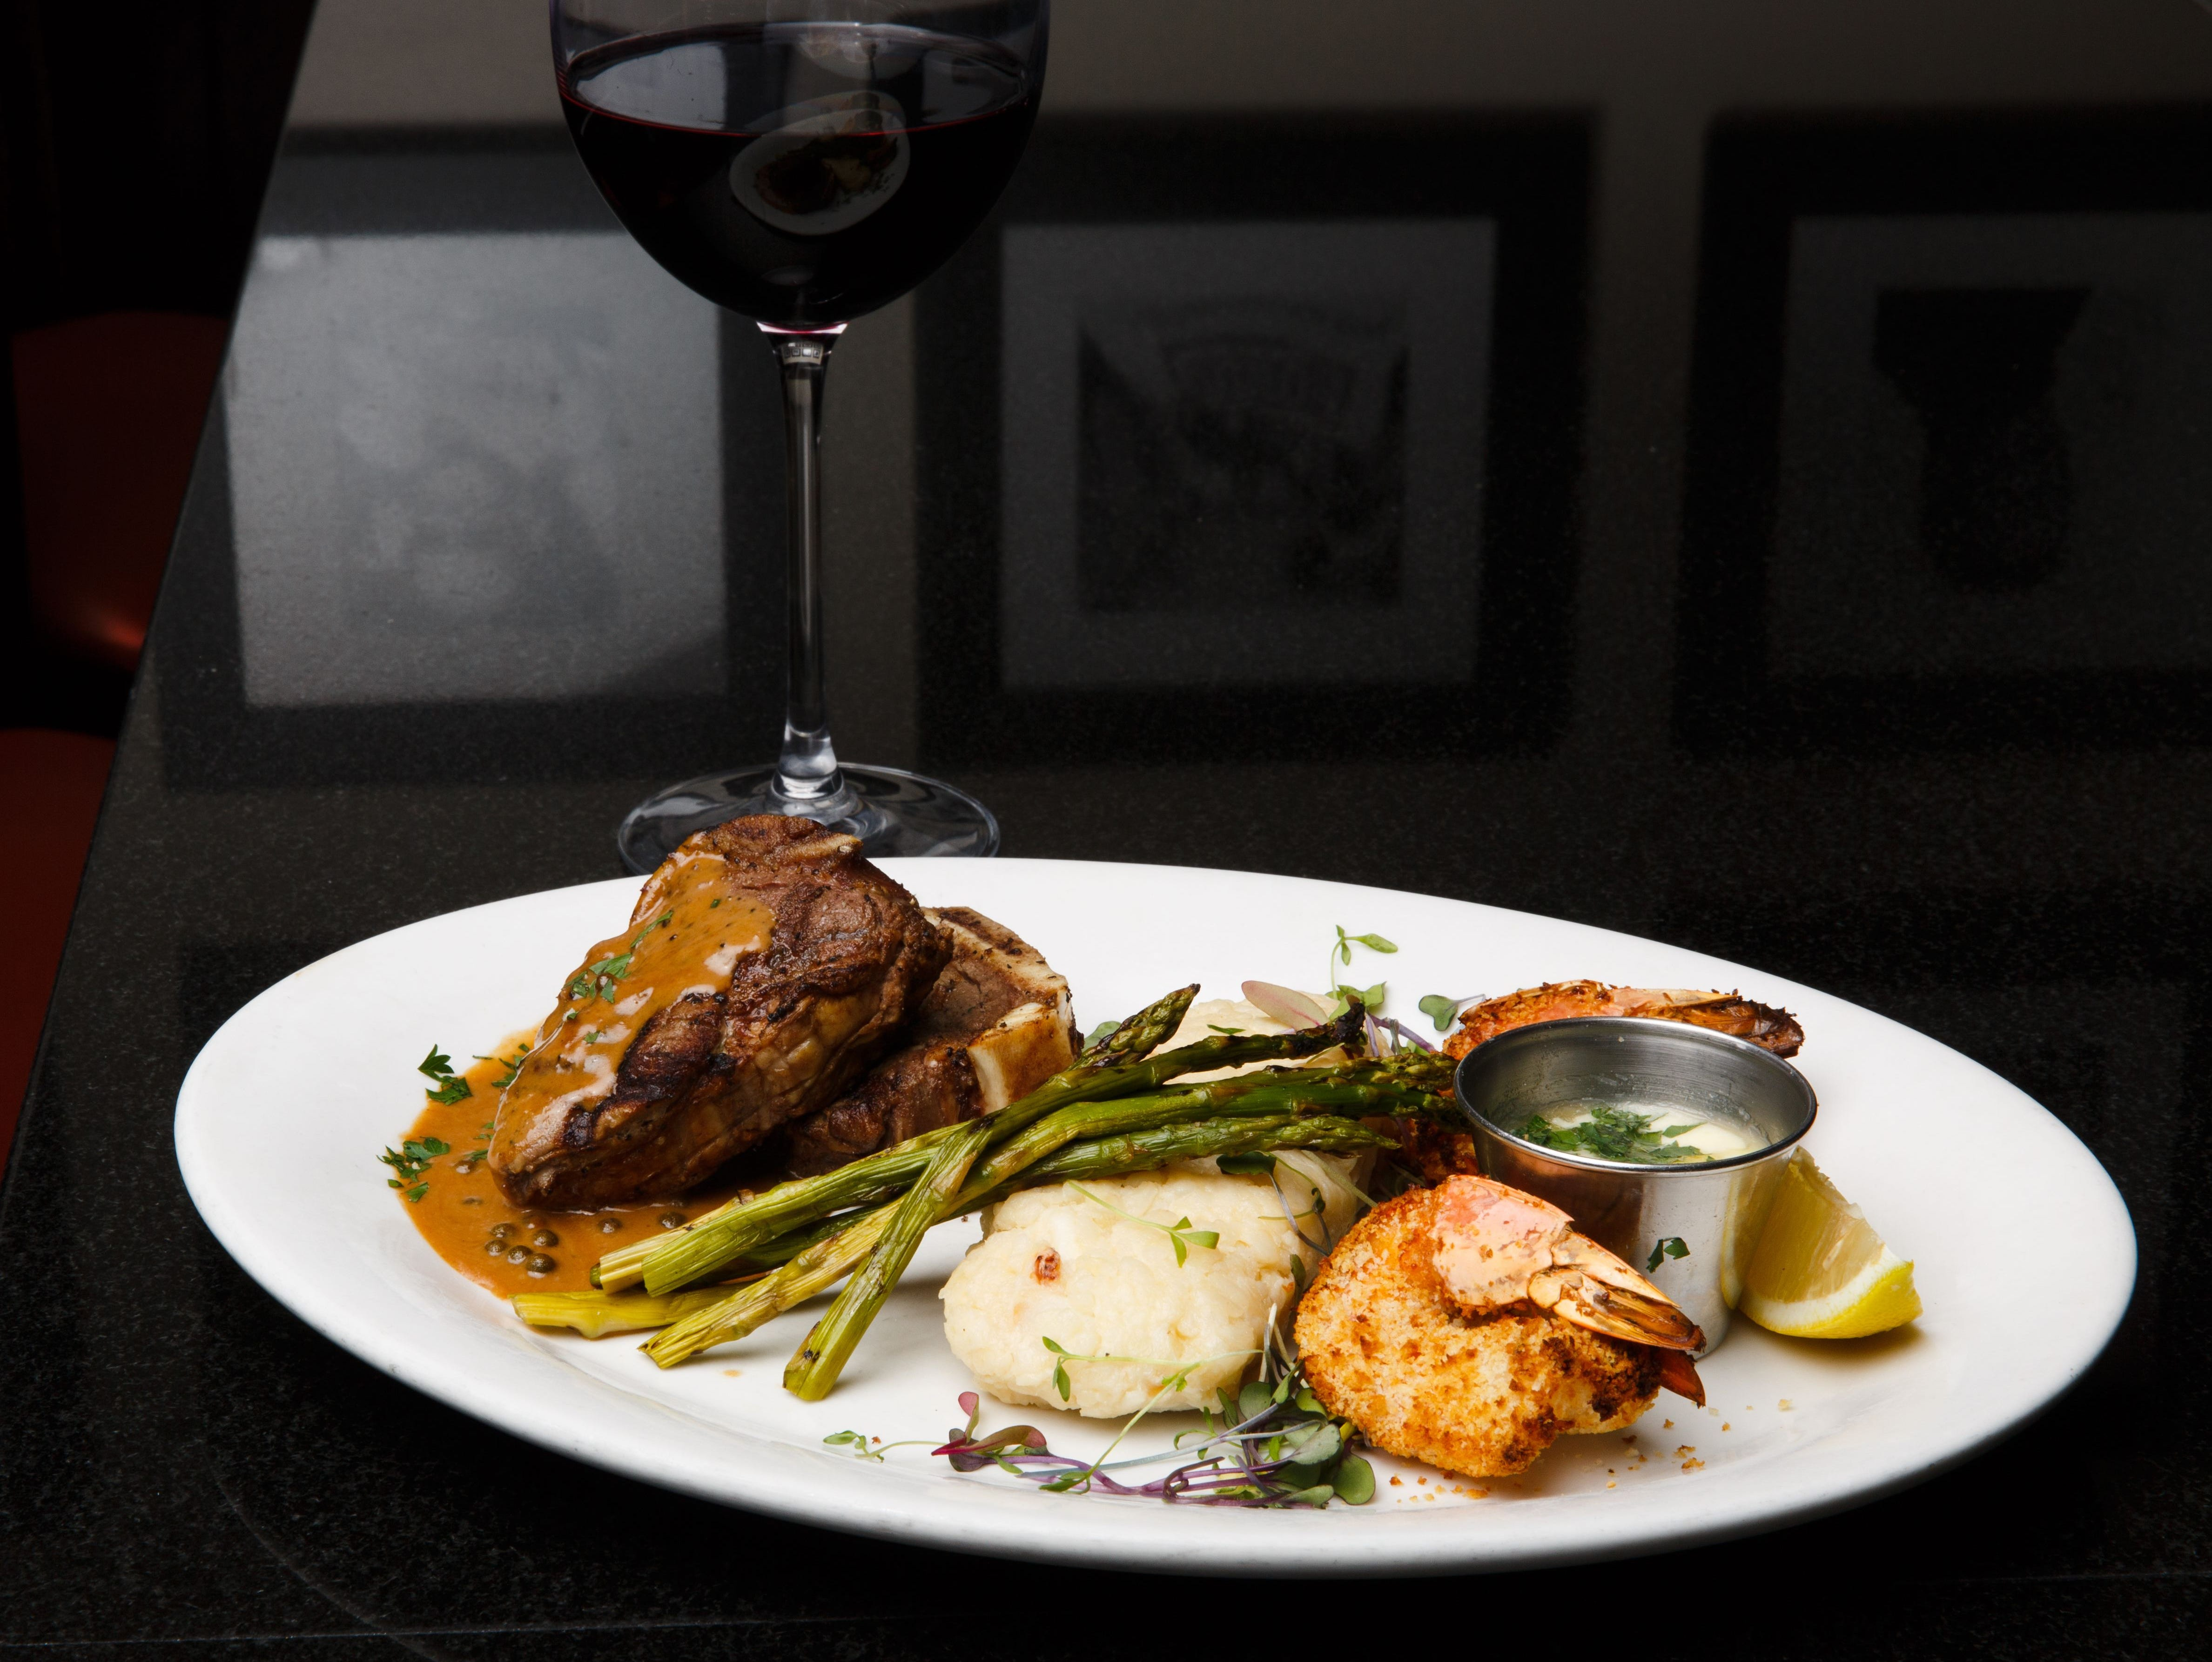 WILD HORSE PASS HOTEL & CASINO | Shula's Steak House will serve a three-course menu ($65) from 11 a.m.-8 p.m. that includes a scallop appetizer, rack of lamb and strawberry crisp. Fullhouse Café will serve a buffet ($30) from 9 a.m.-3 p.m. Walk-ins OK.DETAILS: 5040 Wild Horse Pass Blvd., Gila River Reservation. 800-946-4452, wingilariver.com/wild-horse-pass.